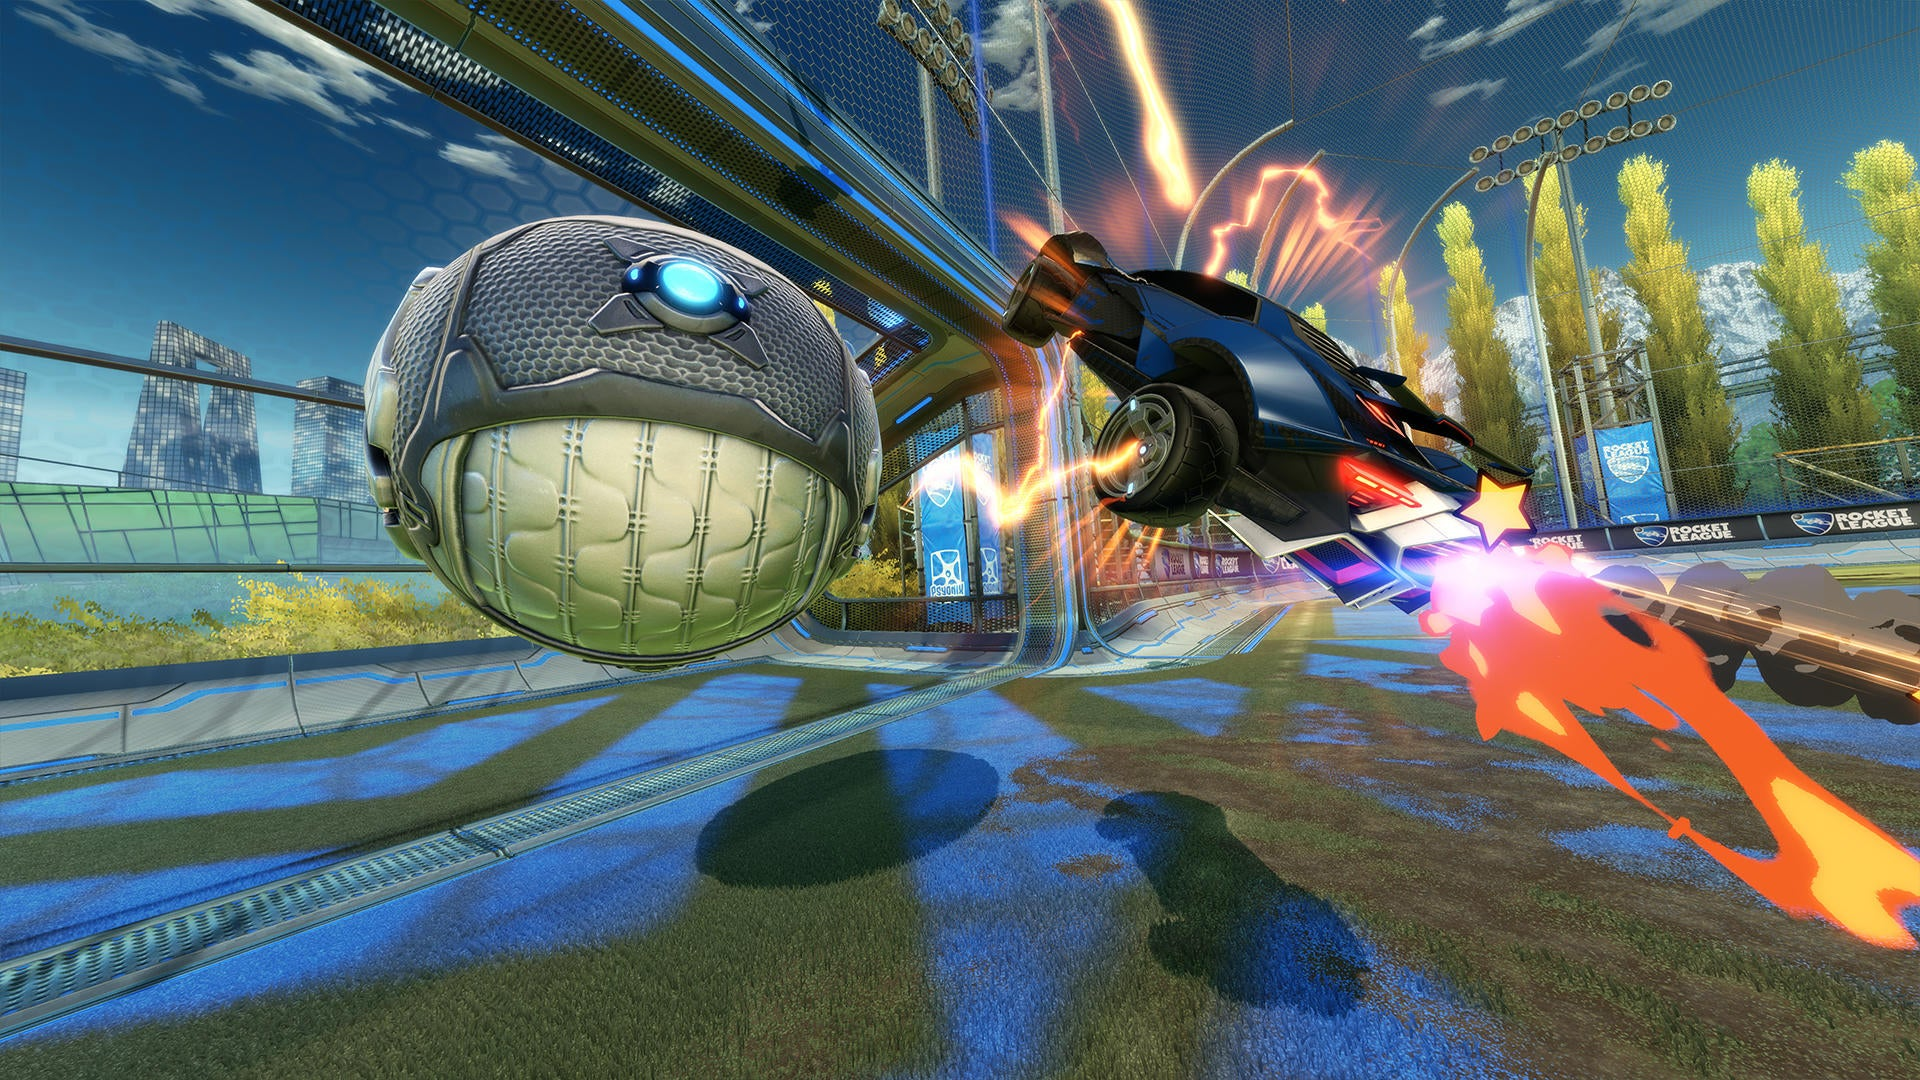 Crates Leaving Rocket League Later This Year Image